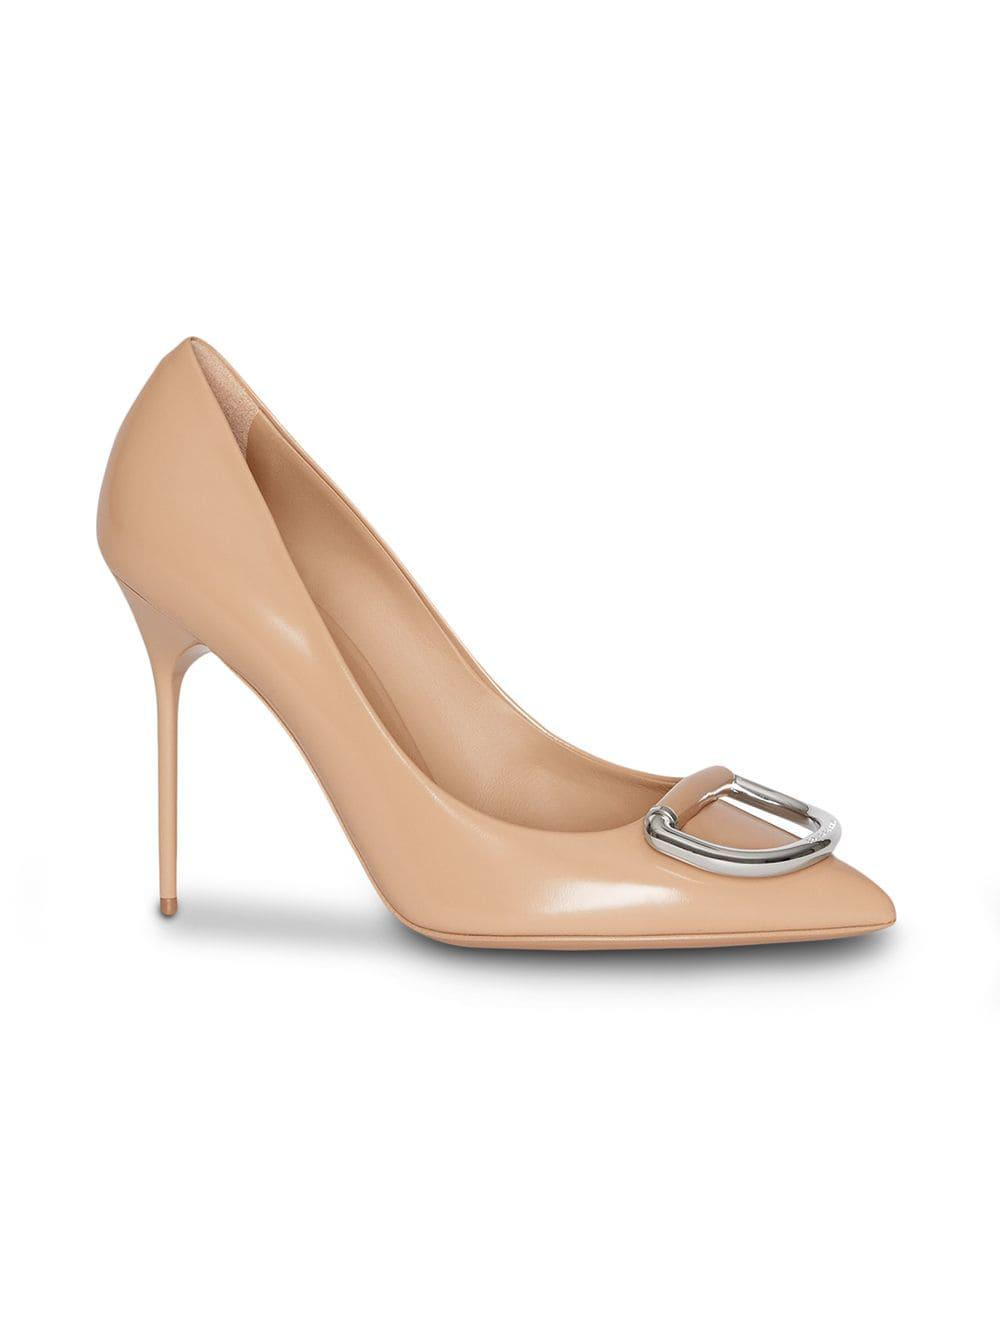 240538dd27fe Lyst - Burberry The Patent Leather D-ring Stiletto in Metallic